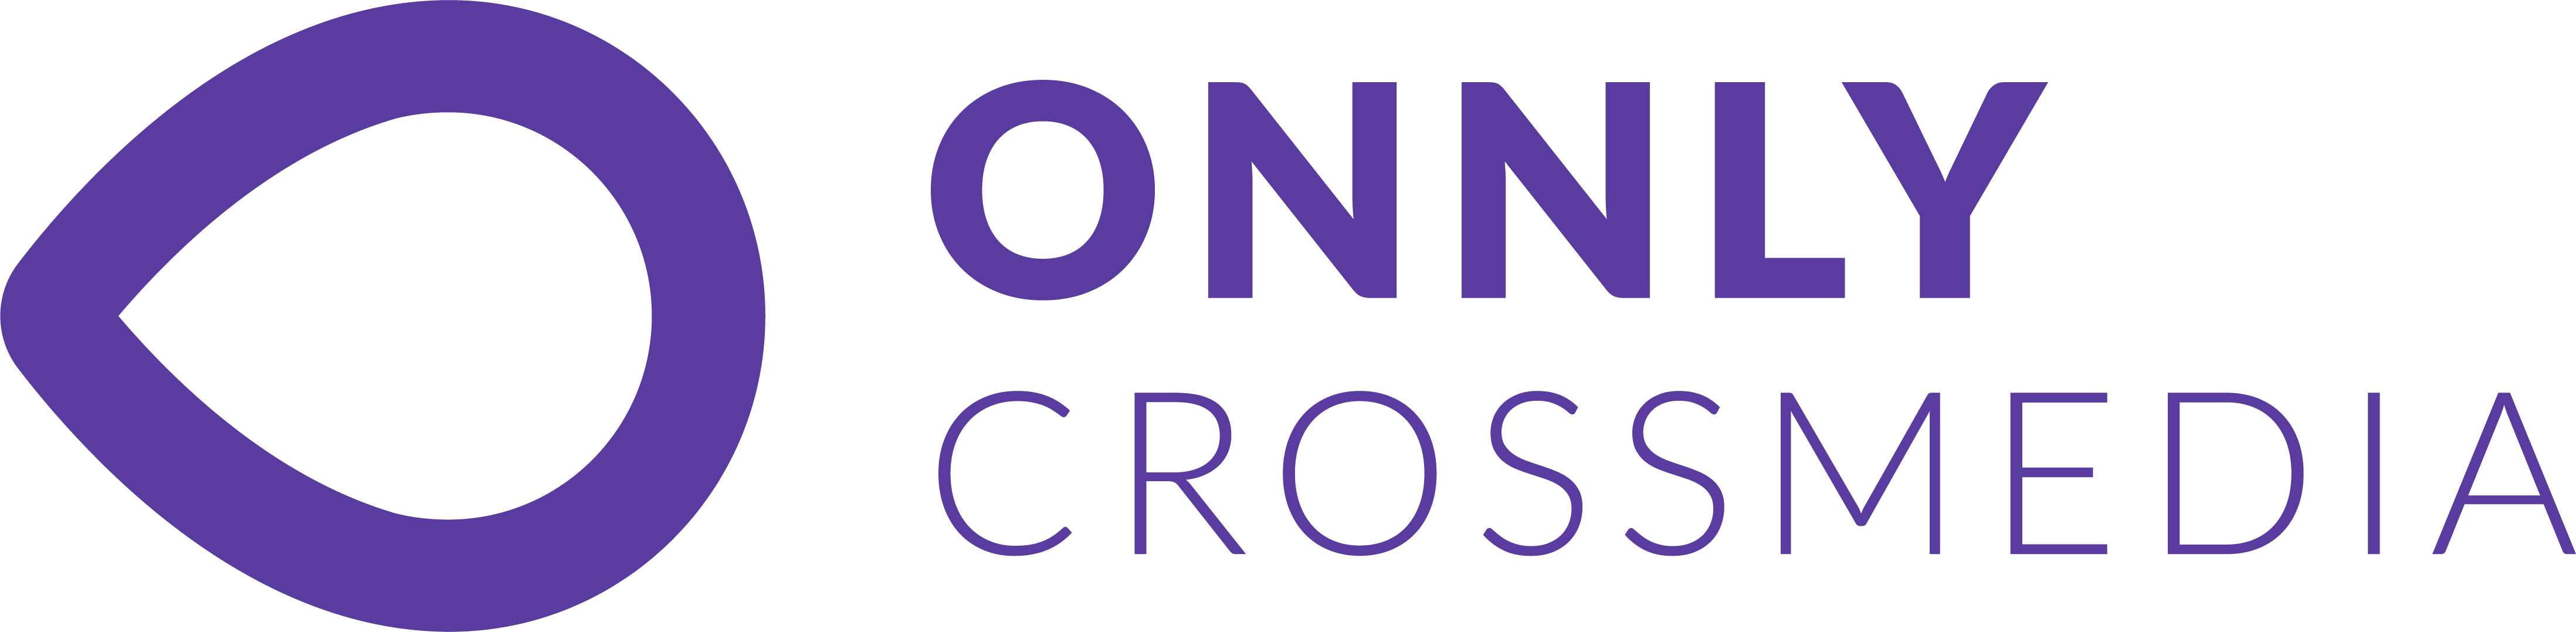 Onnly Crossmedia